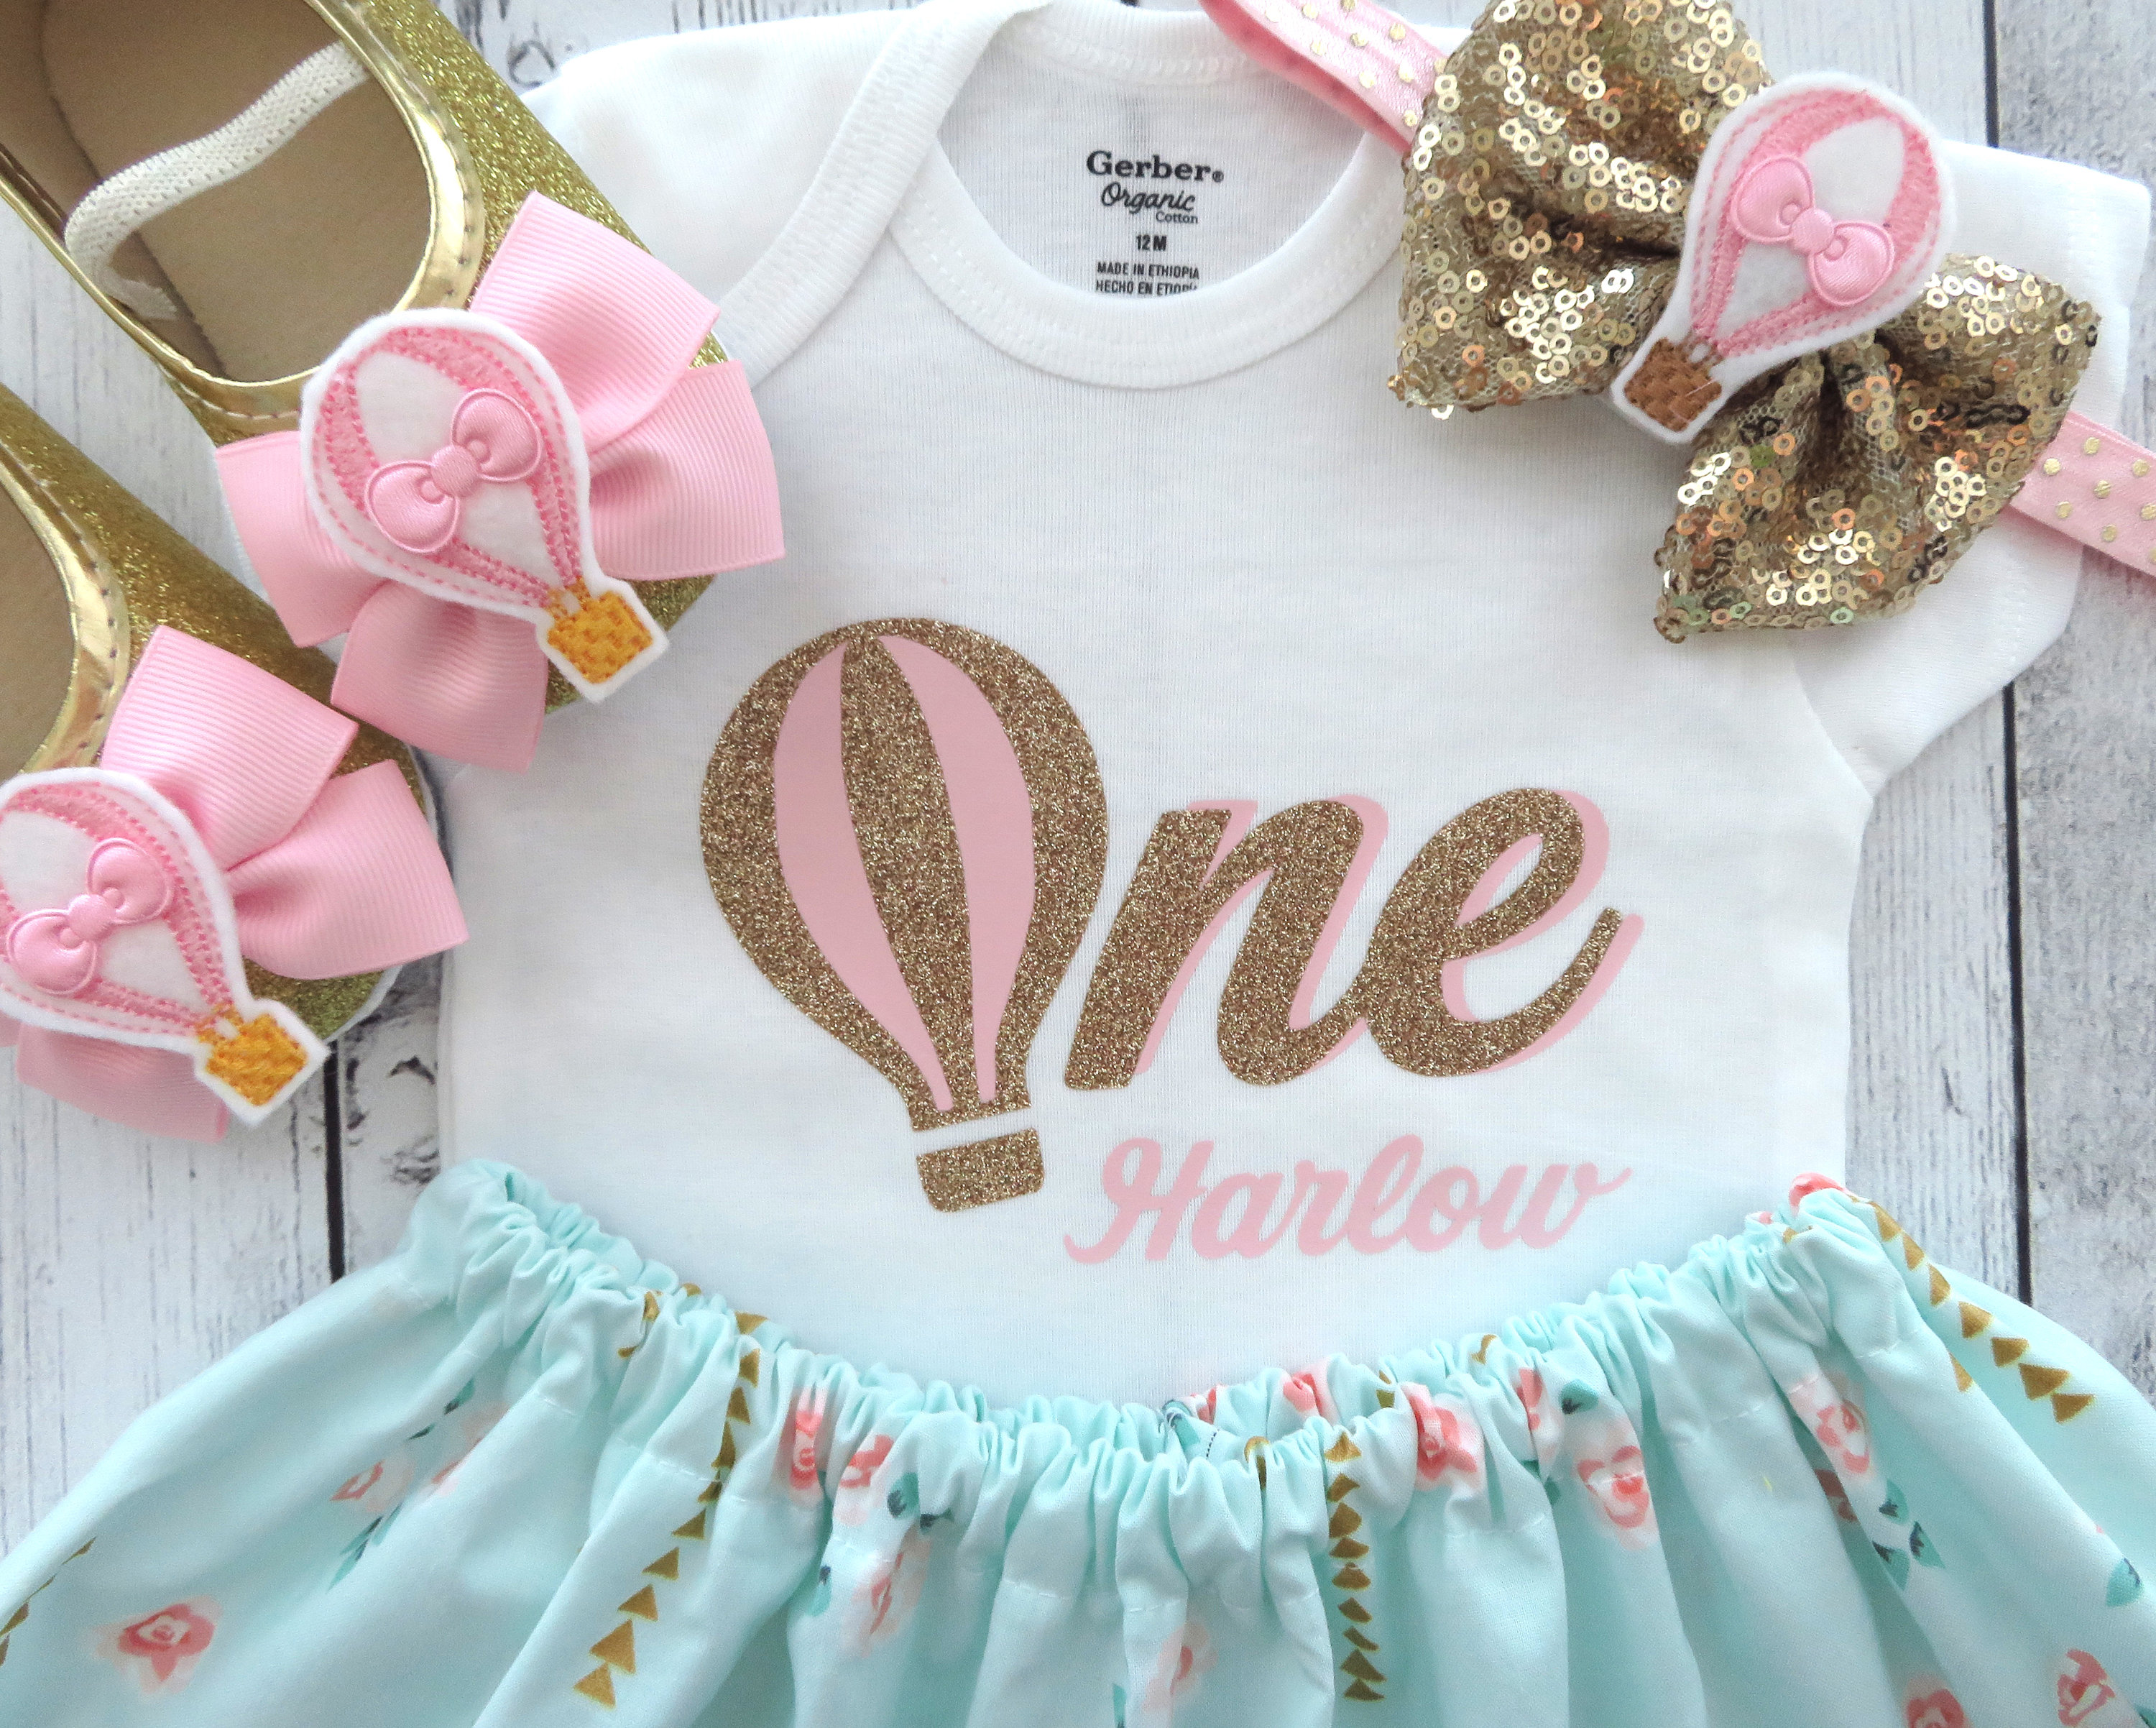 Hot Air Balloon First Birthday Outfit in mint pink and gold - girl birthday outfit, cake smash, pink gold, hot air balloon 1st bday outfit